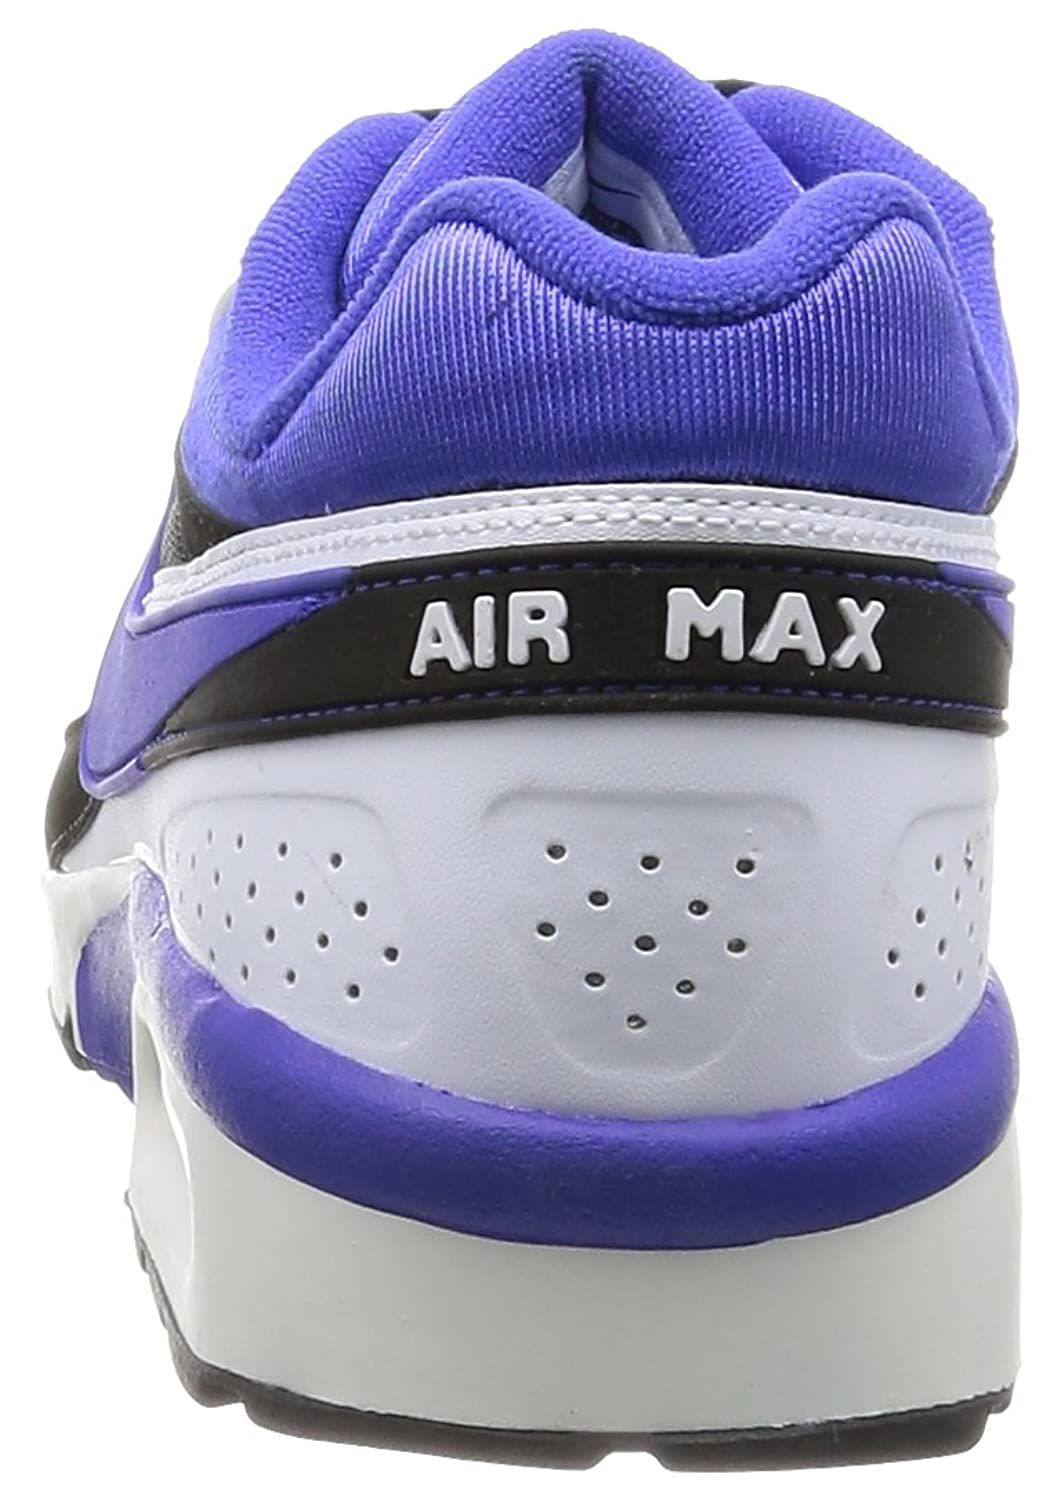 Nike Nike Air Max Classic BW FB, Sneakers Basses homme, Schwarz (Persian violet/white), 41